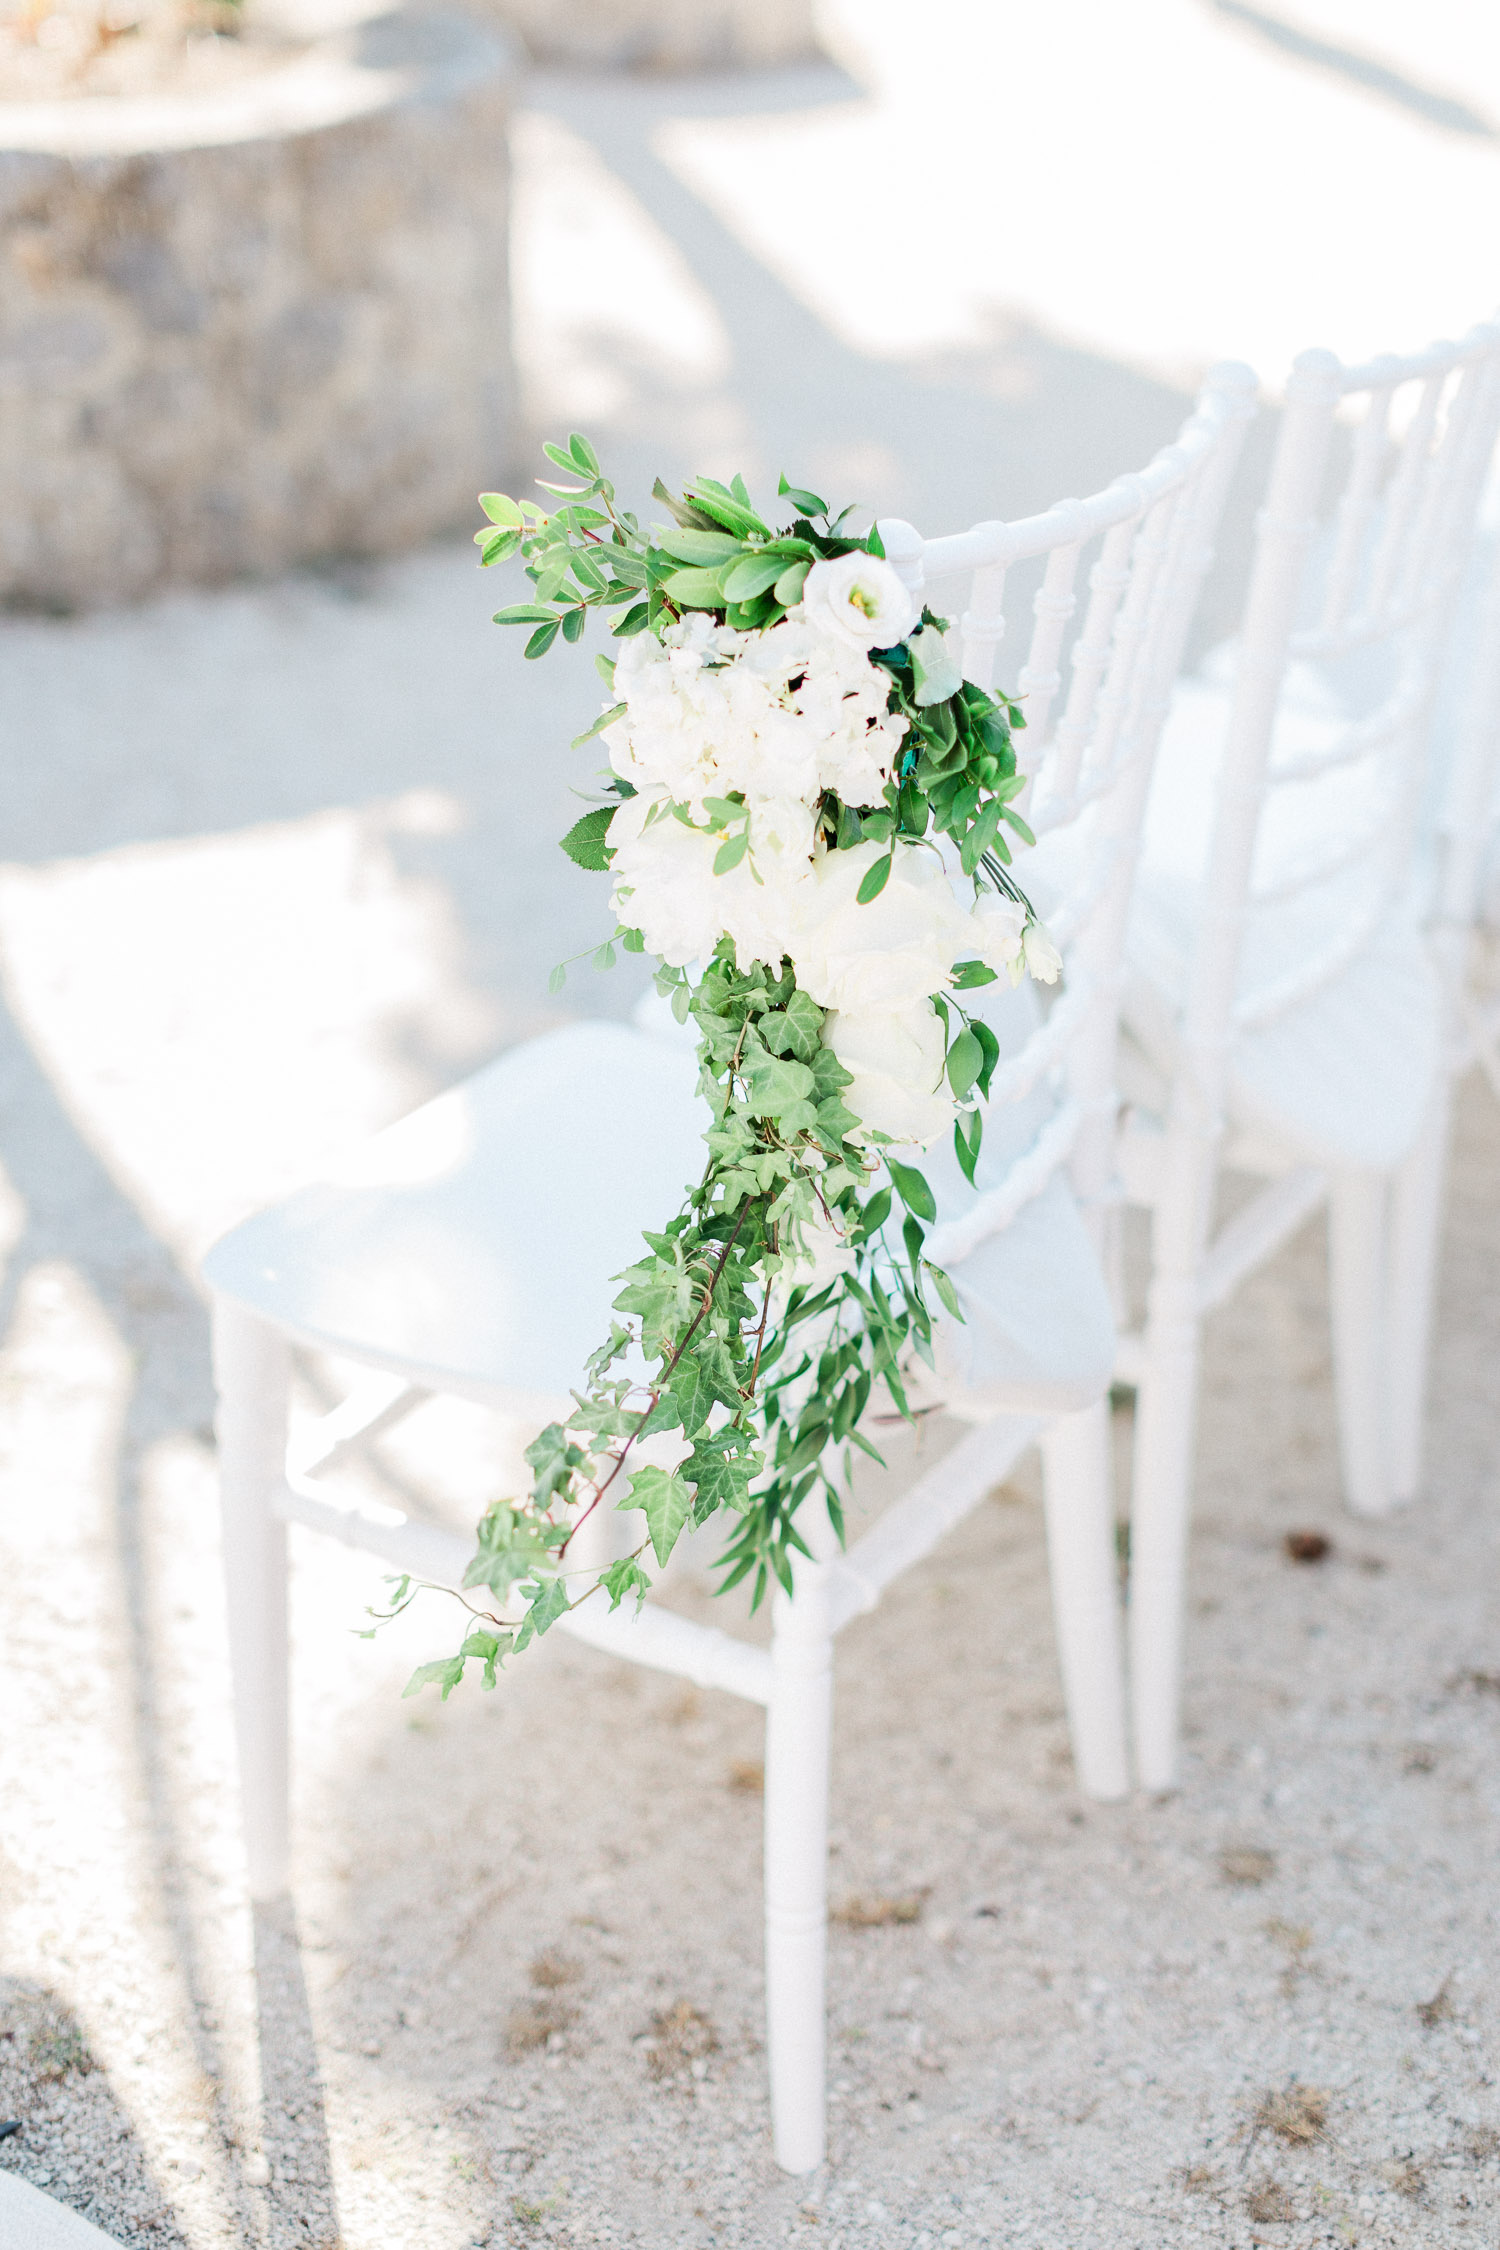 all white chair floral details at wedding ceremony set up